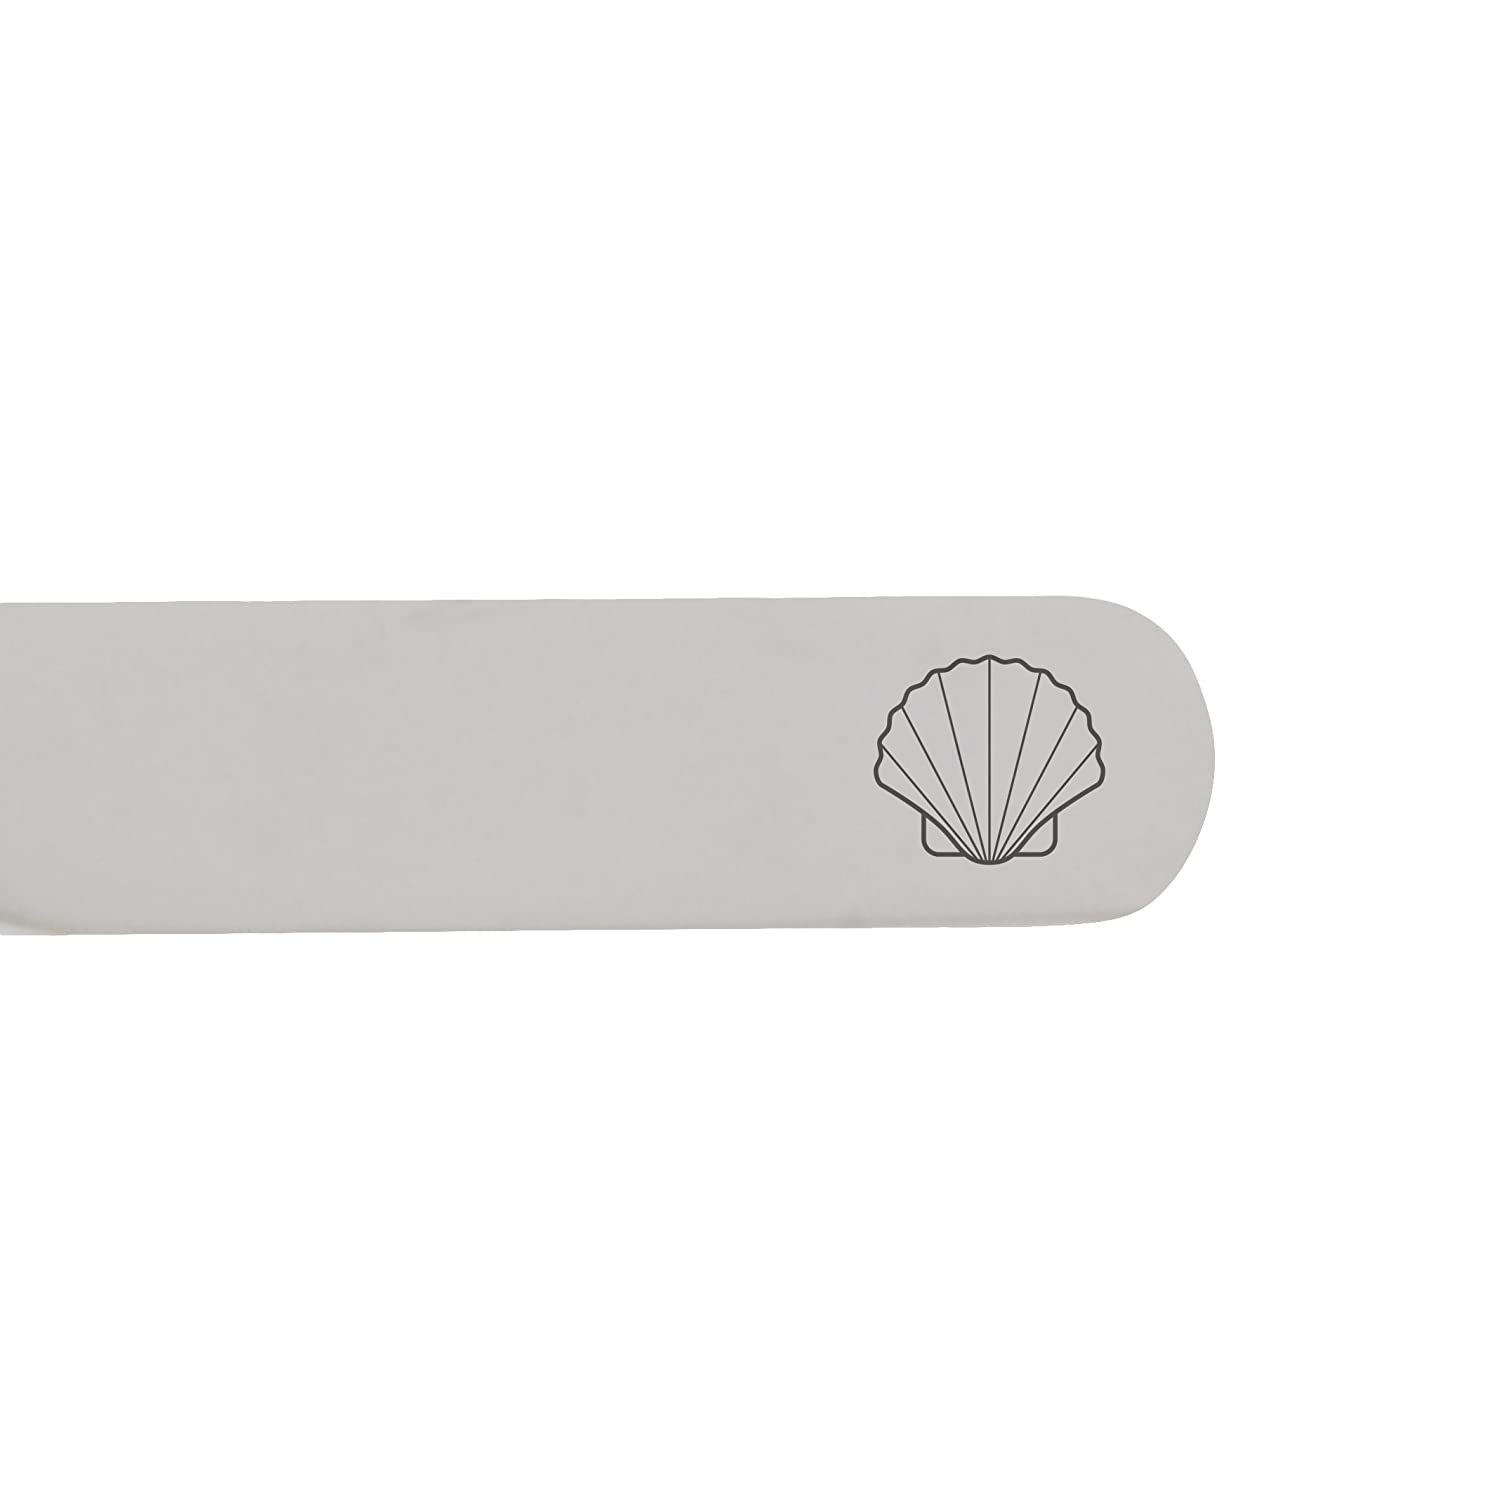 MODERN GOODS SHOP Stainless Steel Collar Stays With Laser Engraved Sea Shell Design 2.5 Inch Metal Collar Stiffeners Made In USA